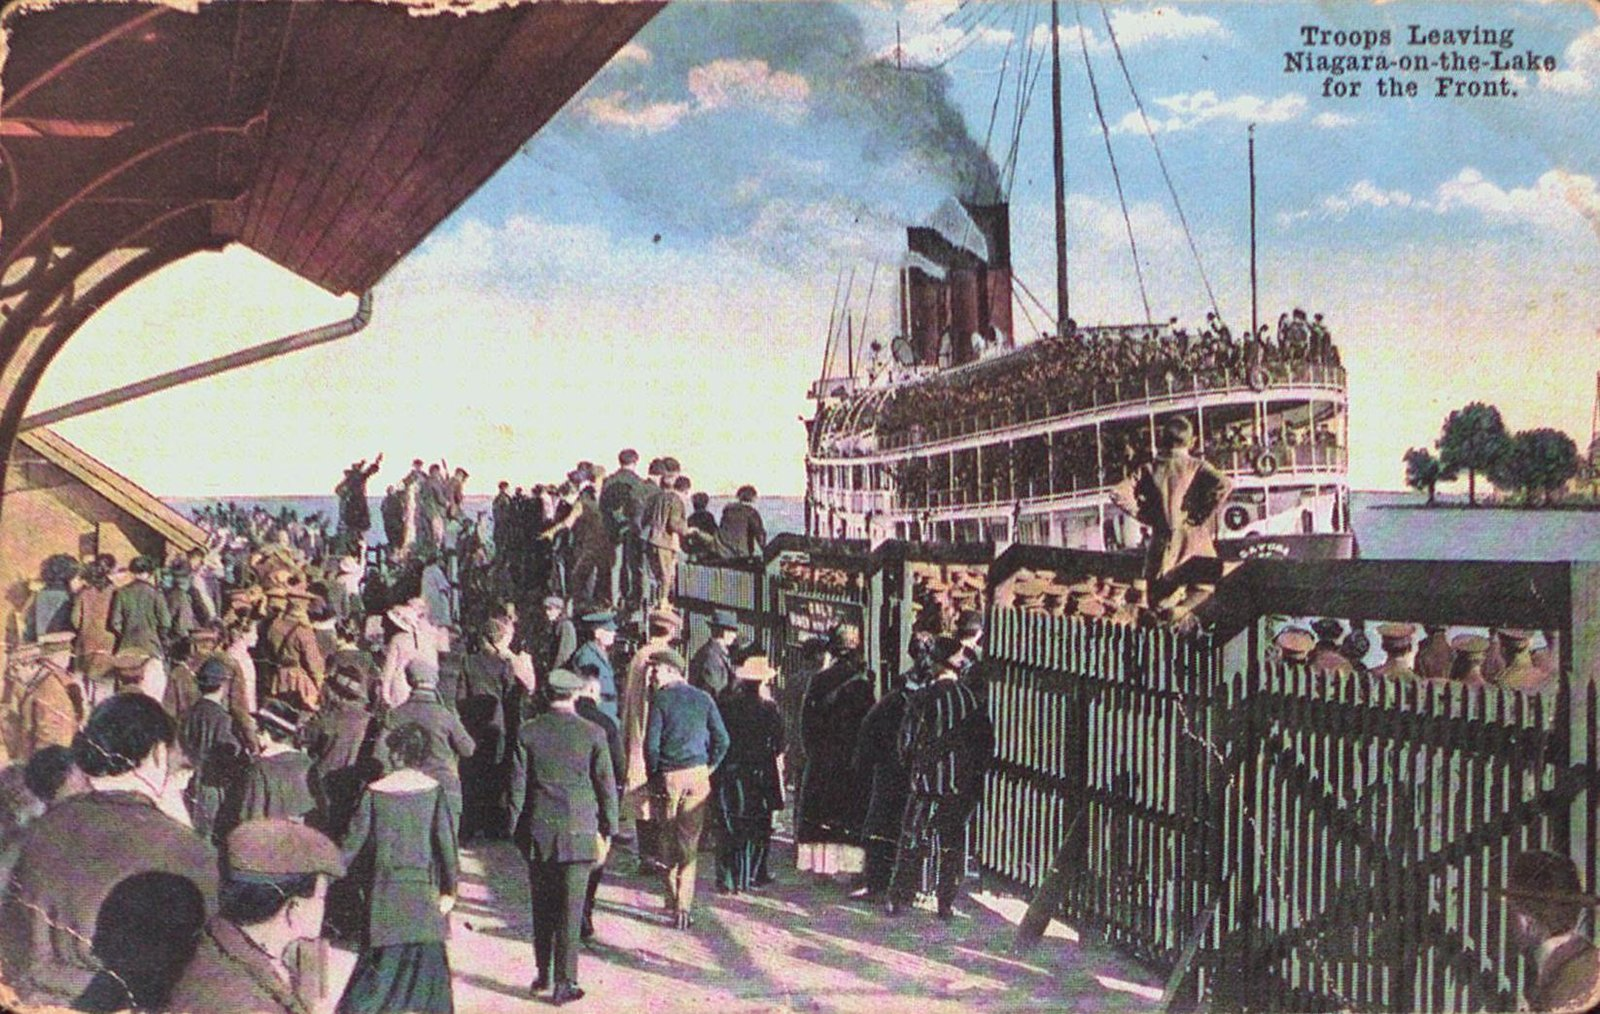 Troops Leaving Niagara-on-the-Lake for the Front